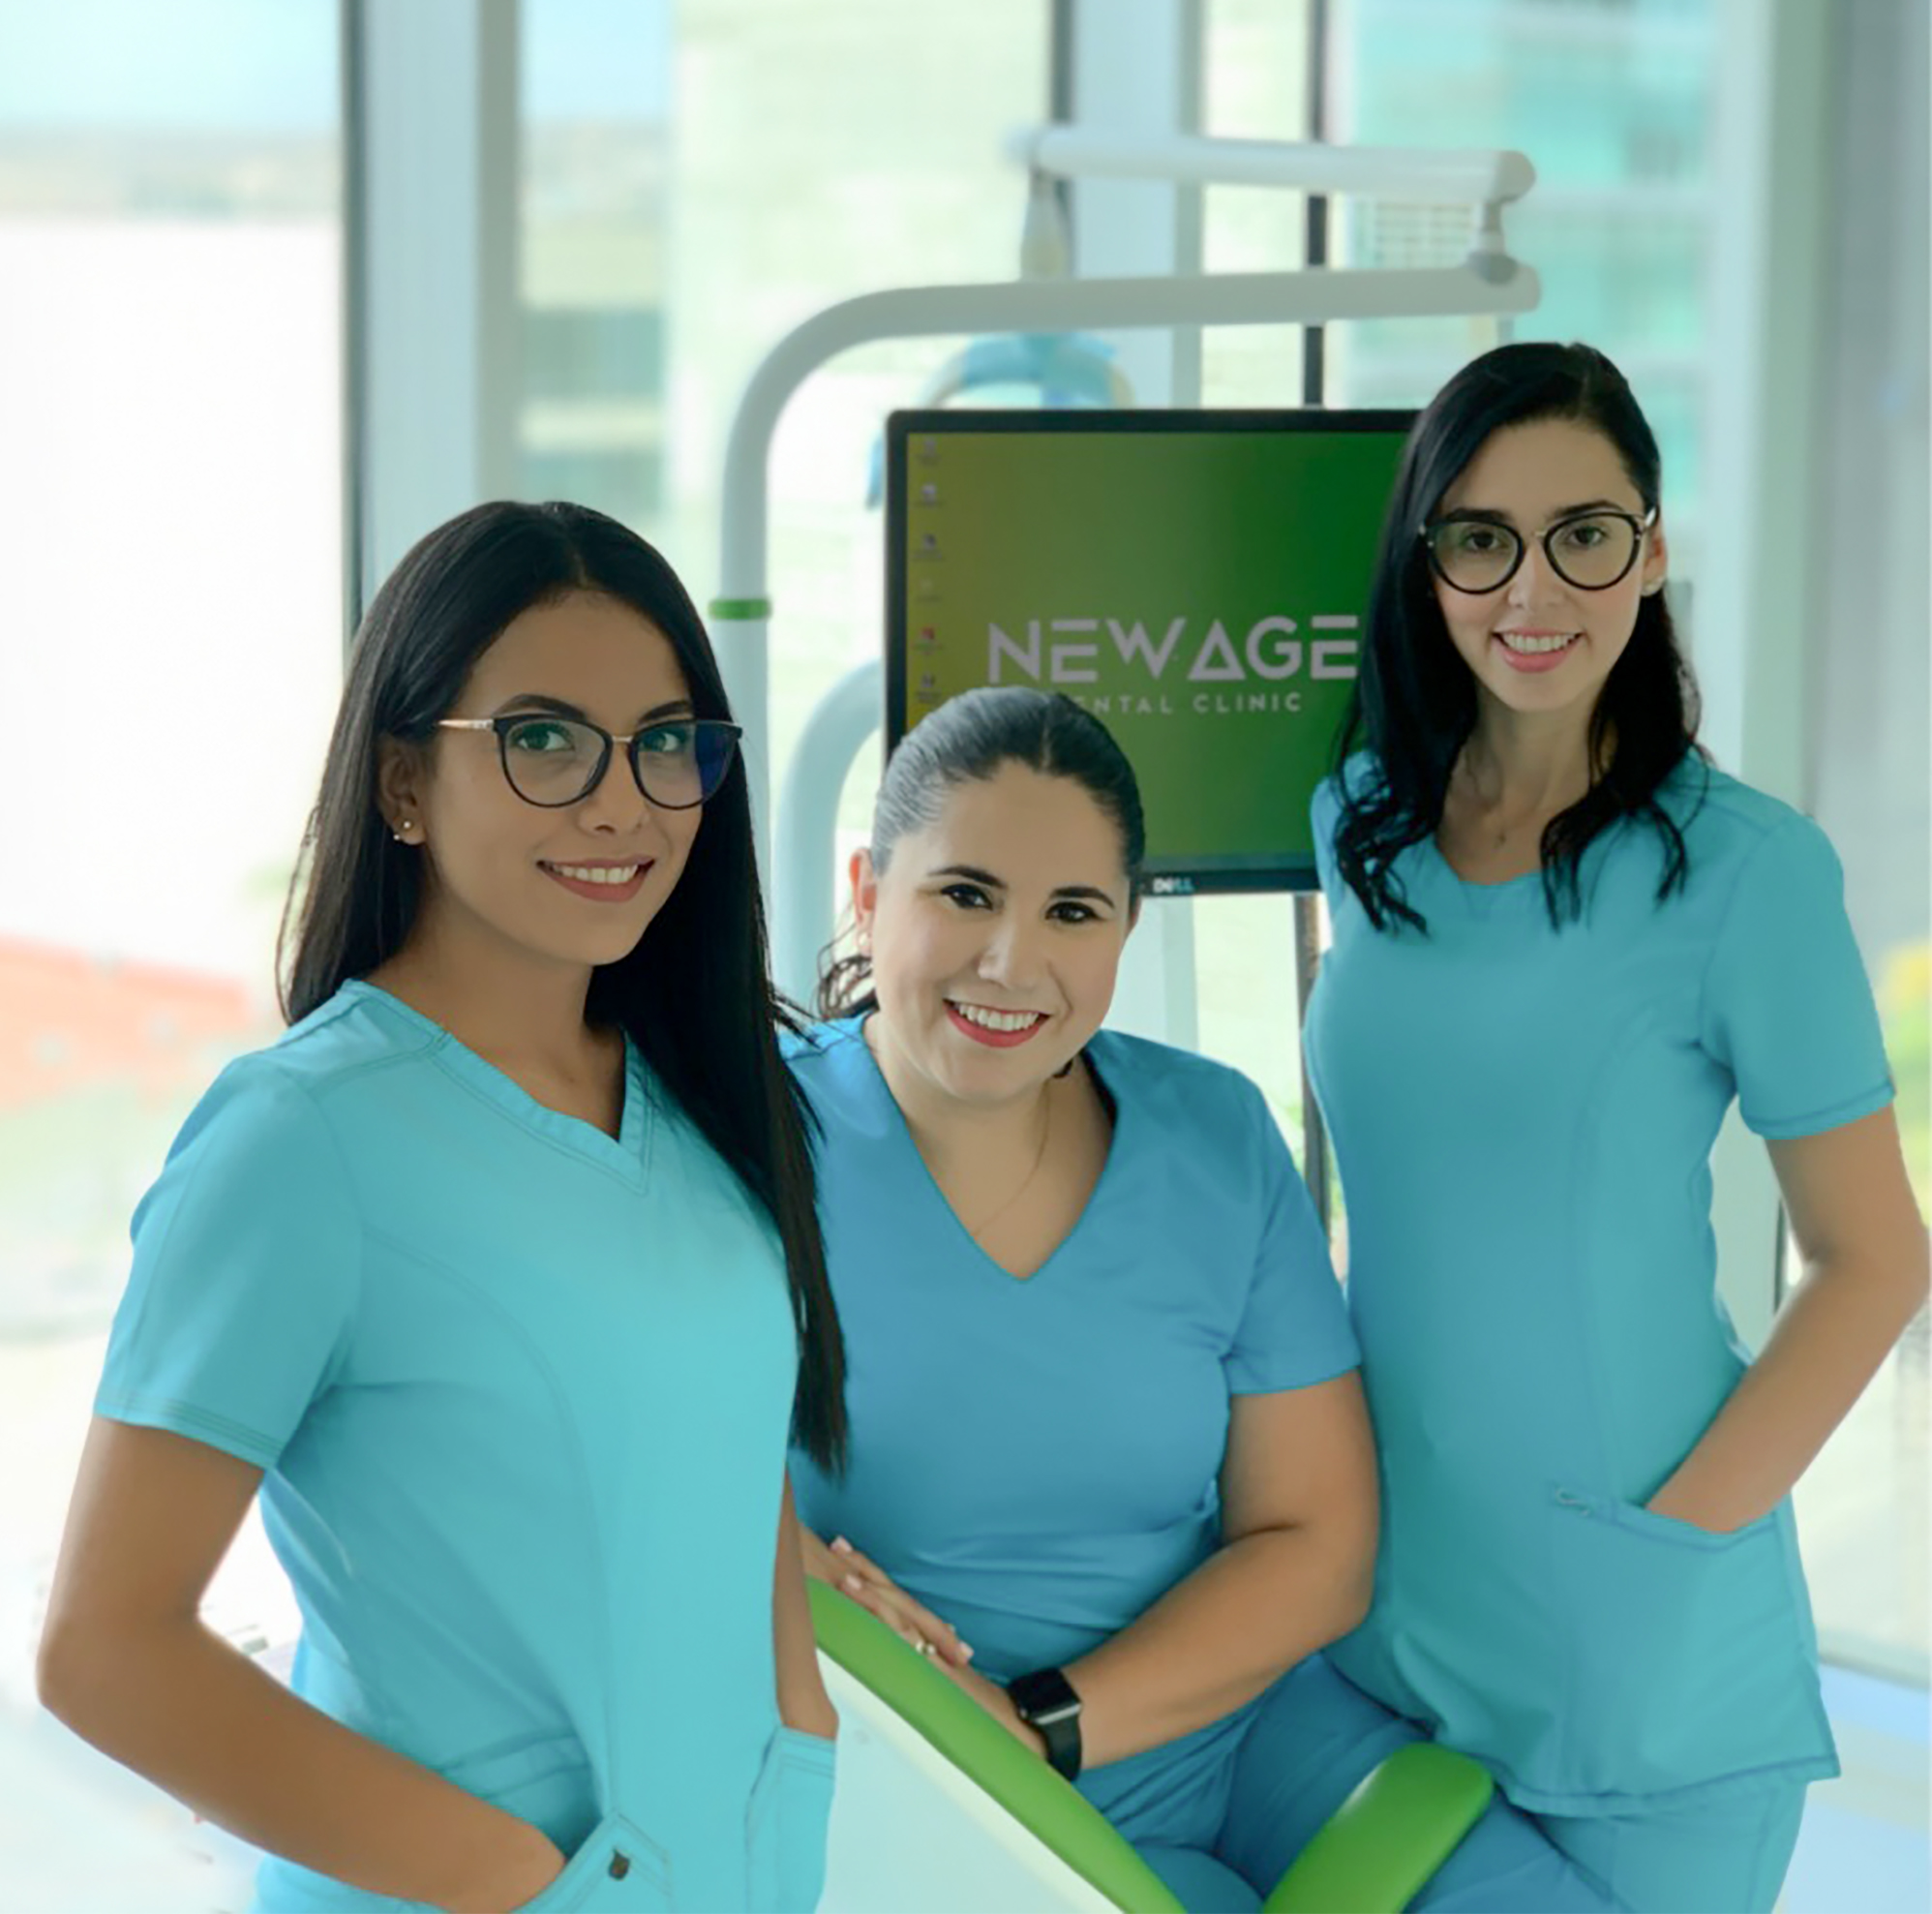 Dr. Alejandra, Dr. Lorena and Dr. Silvia at New Age Dental Clinic in Tijuana